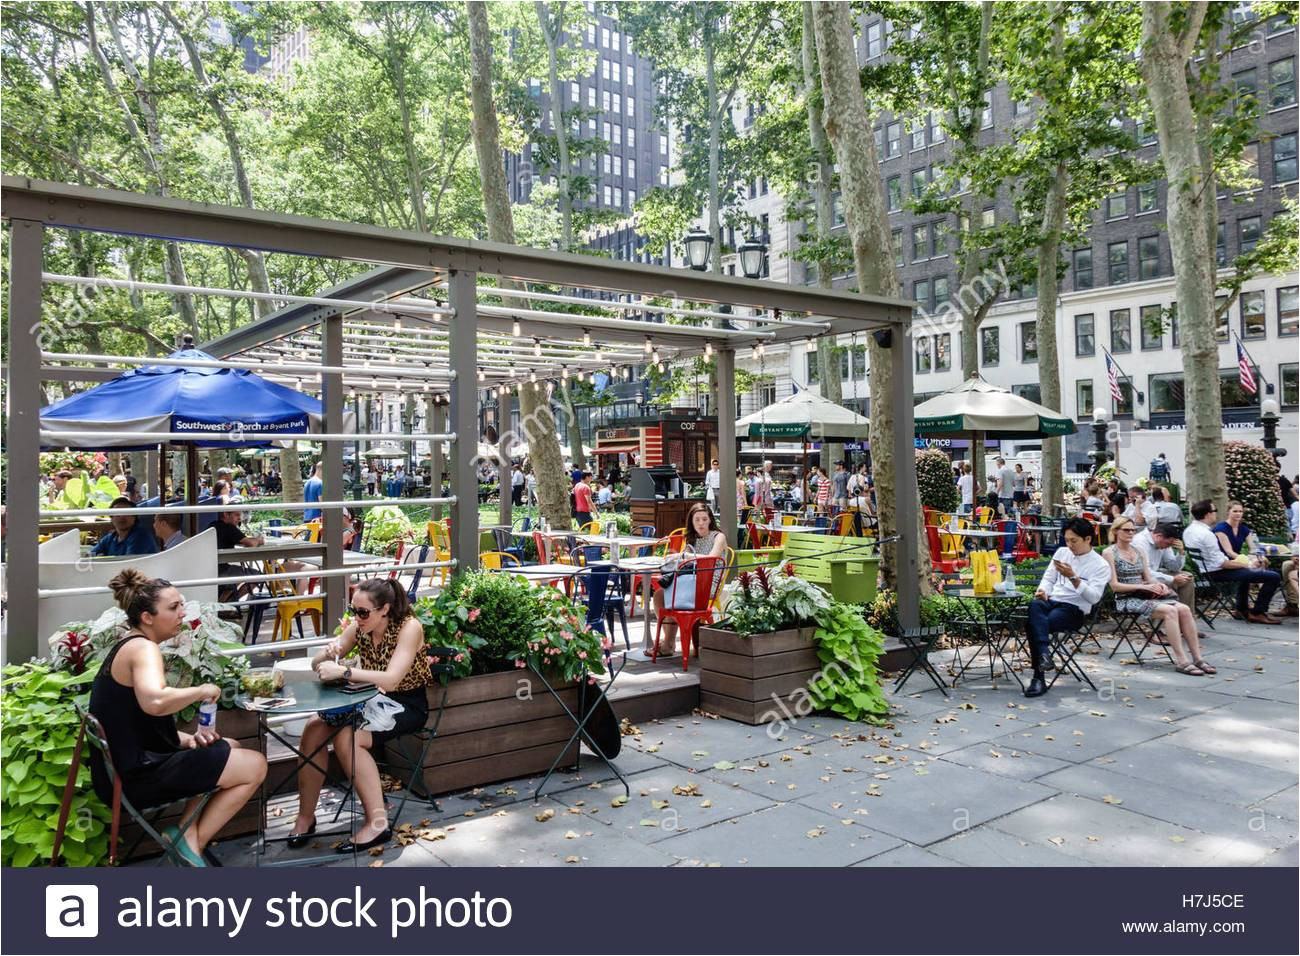 built on an old railway manhattan new york city nyc ny midtown bryant park public park southwest porch restaurant outdoor lounge